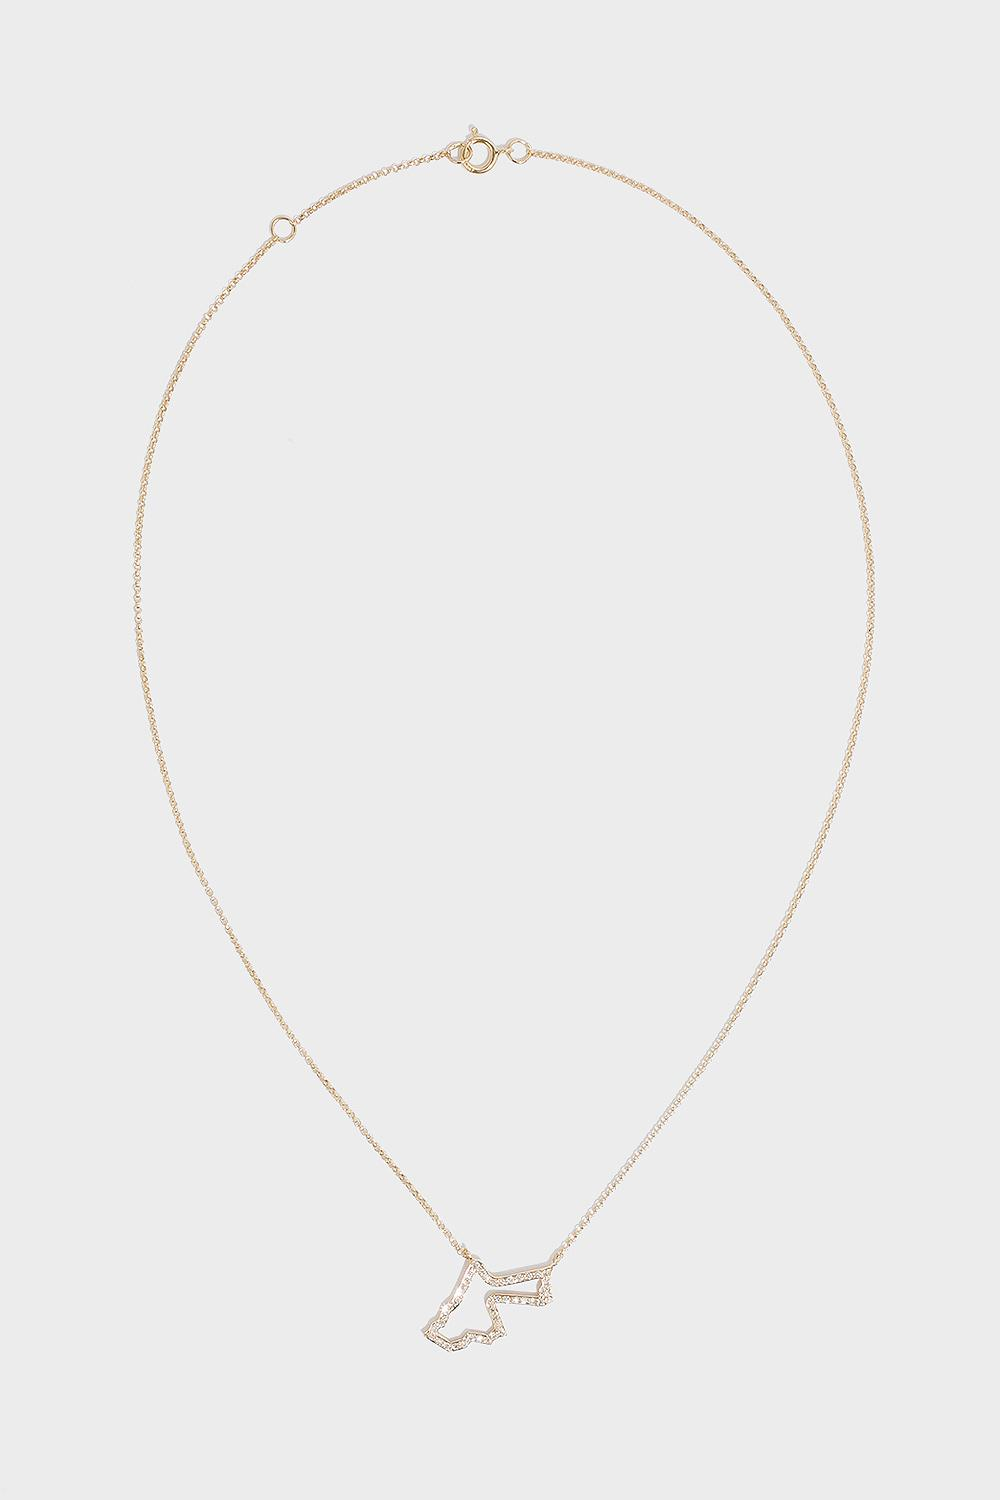 TIBA Jordan Map Outline Necklace, Size Os, Women, Y Gold